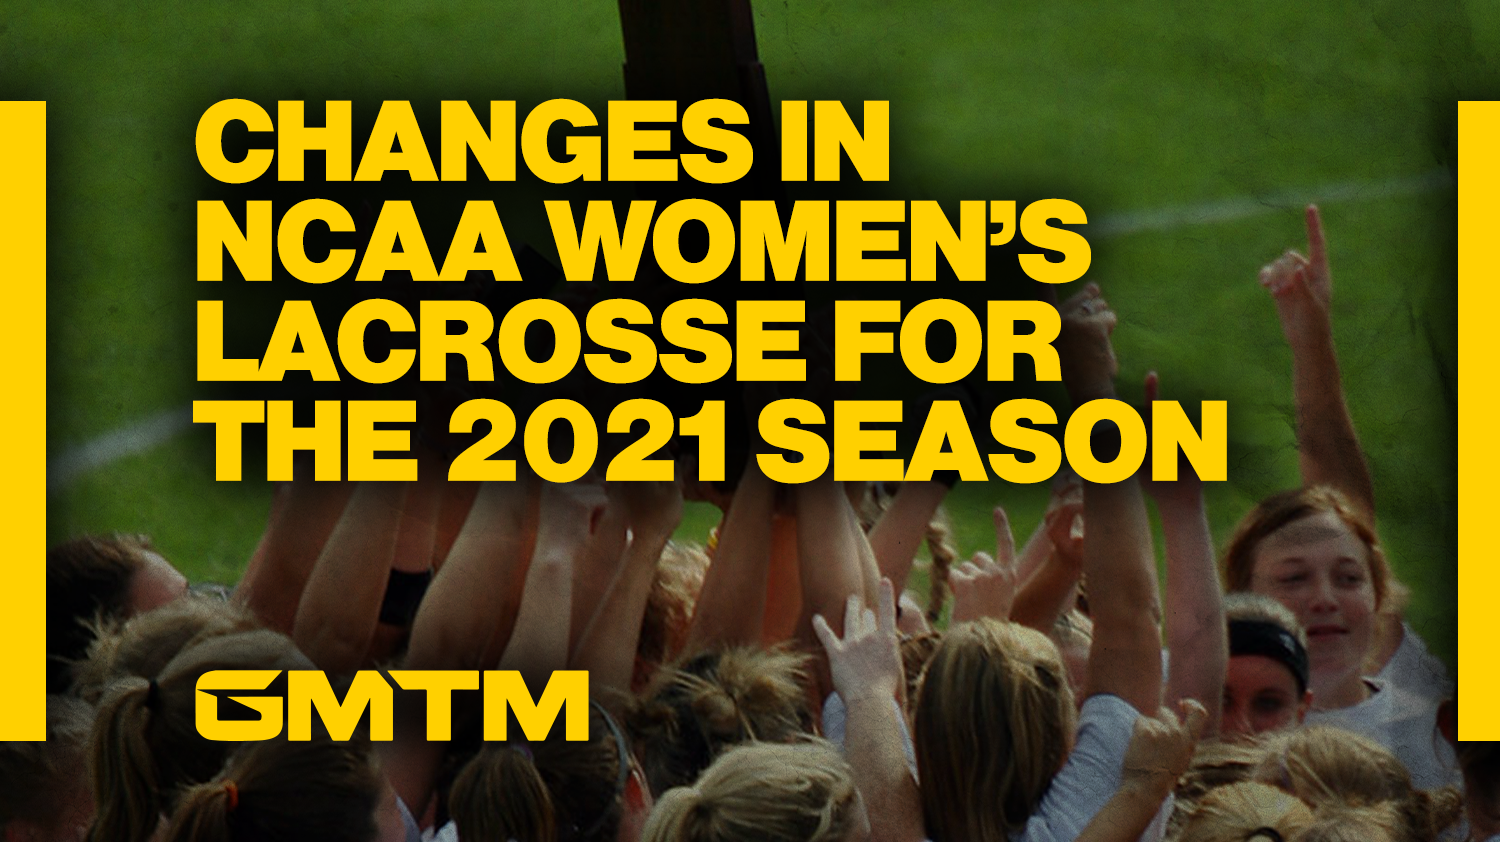 What Are The New Rule Changes in NCAA Women's Lacrosse